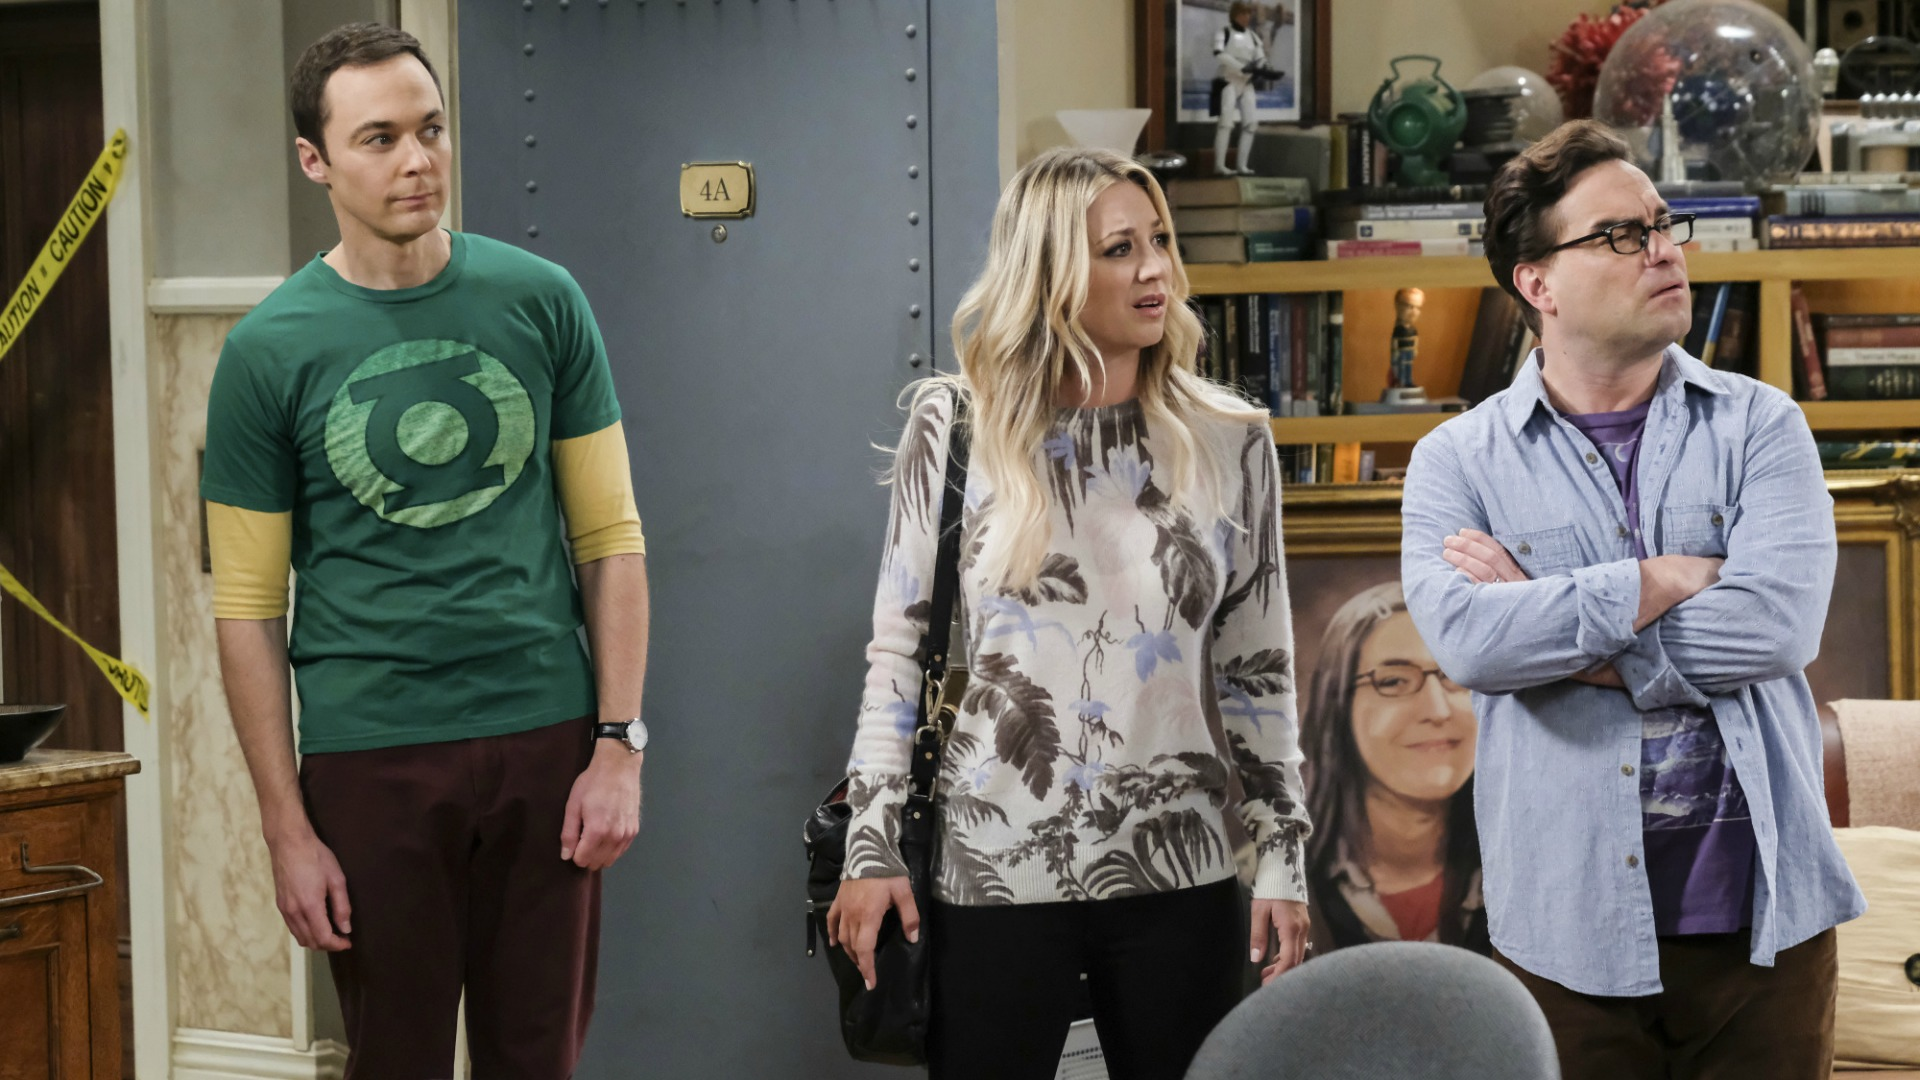 Sheldon shows up just in time to explain.